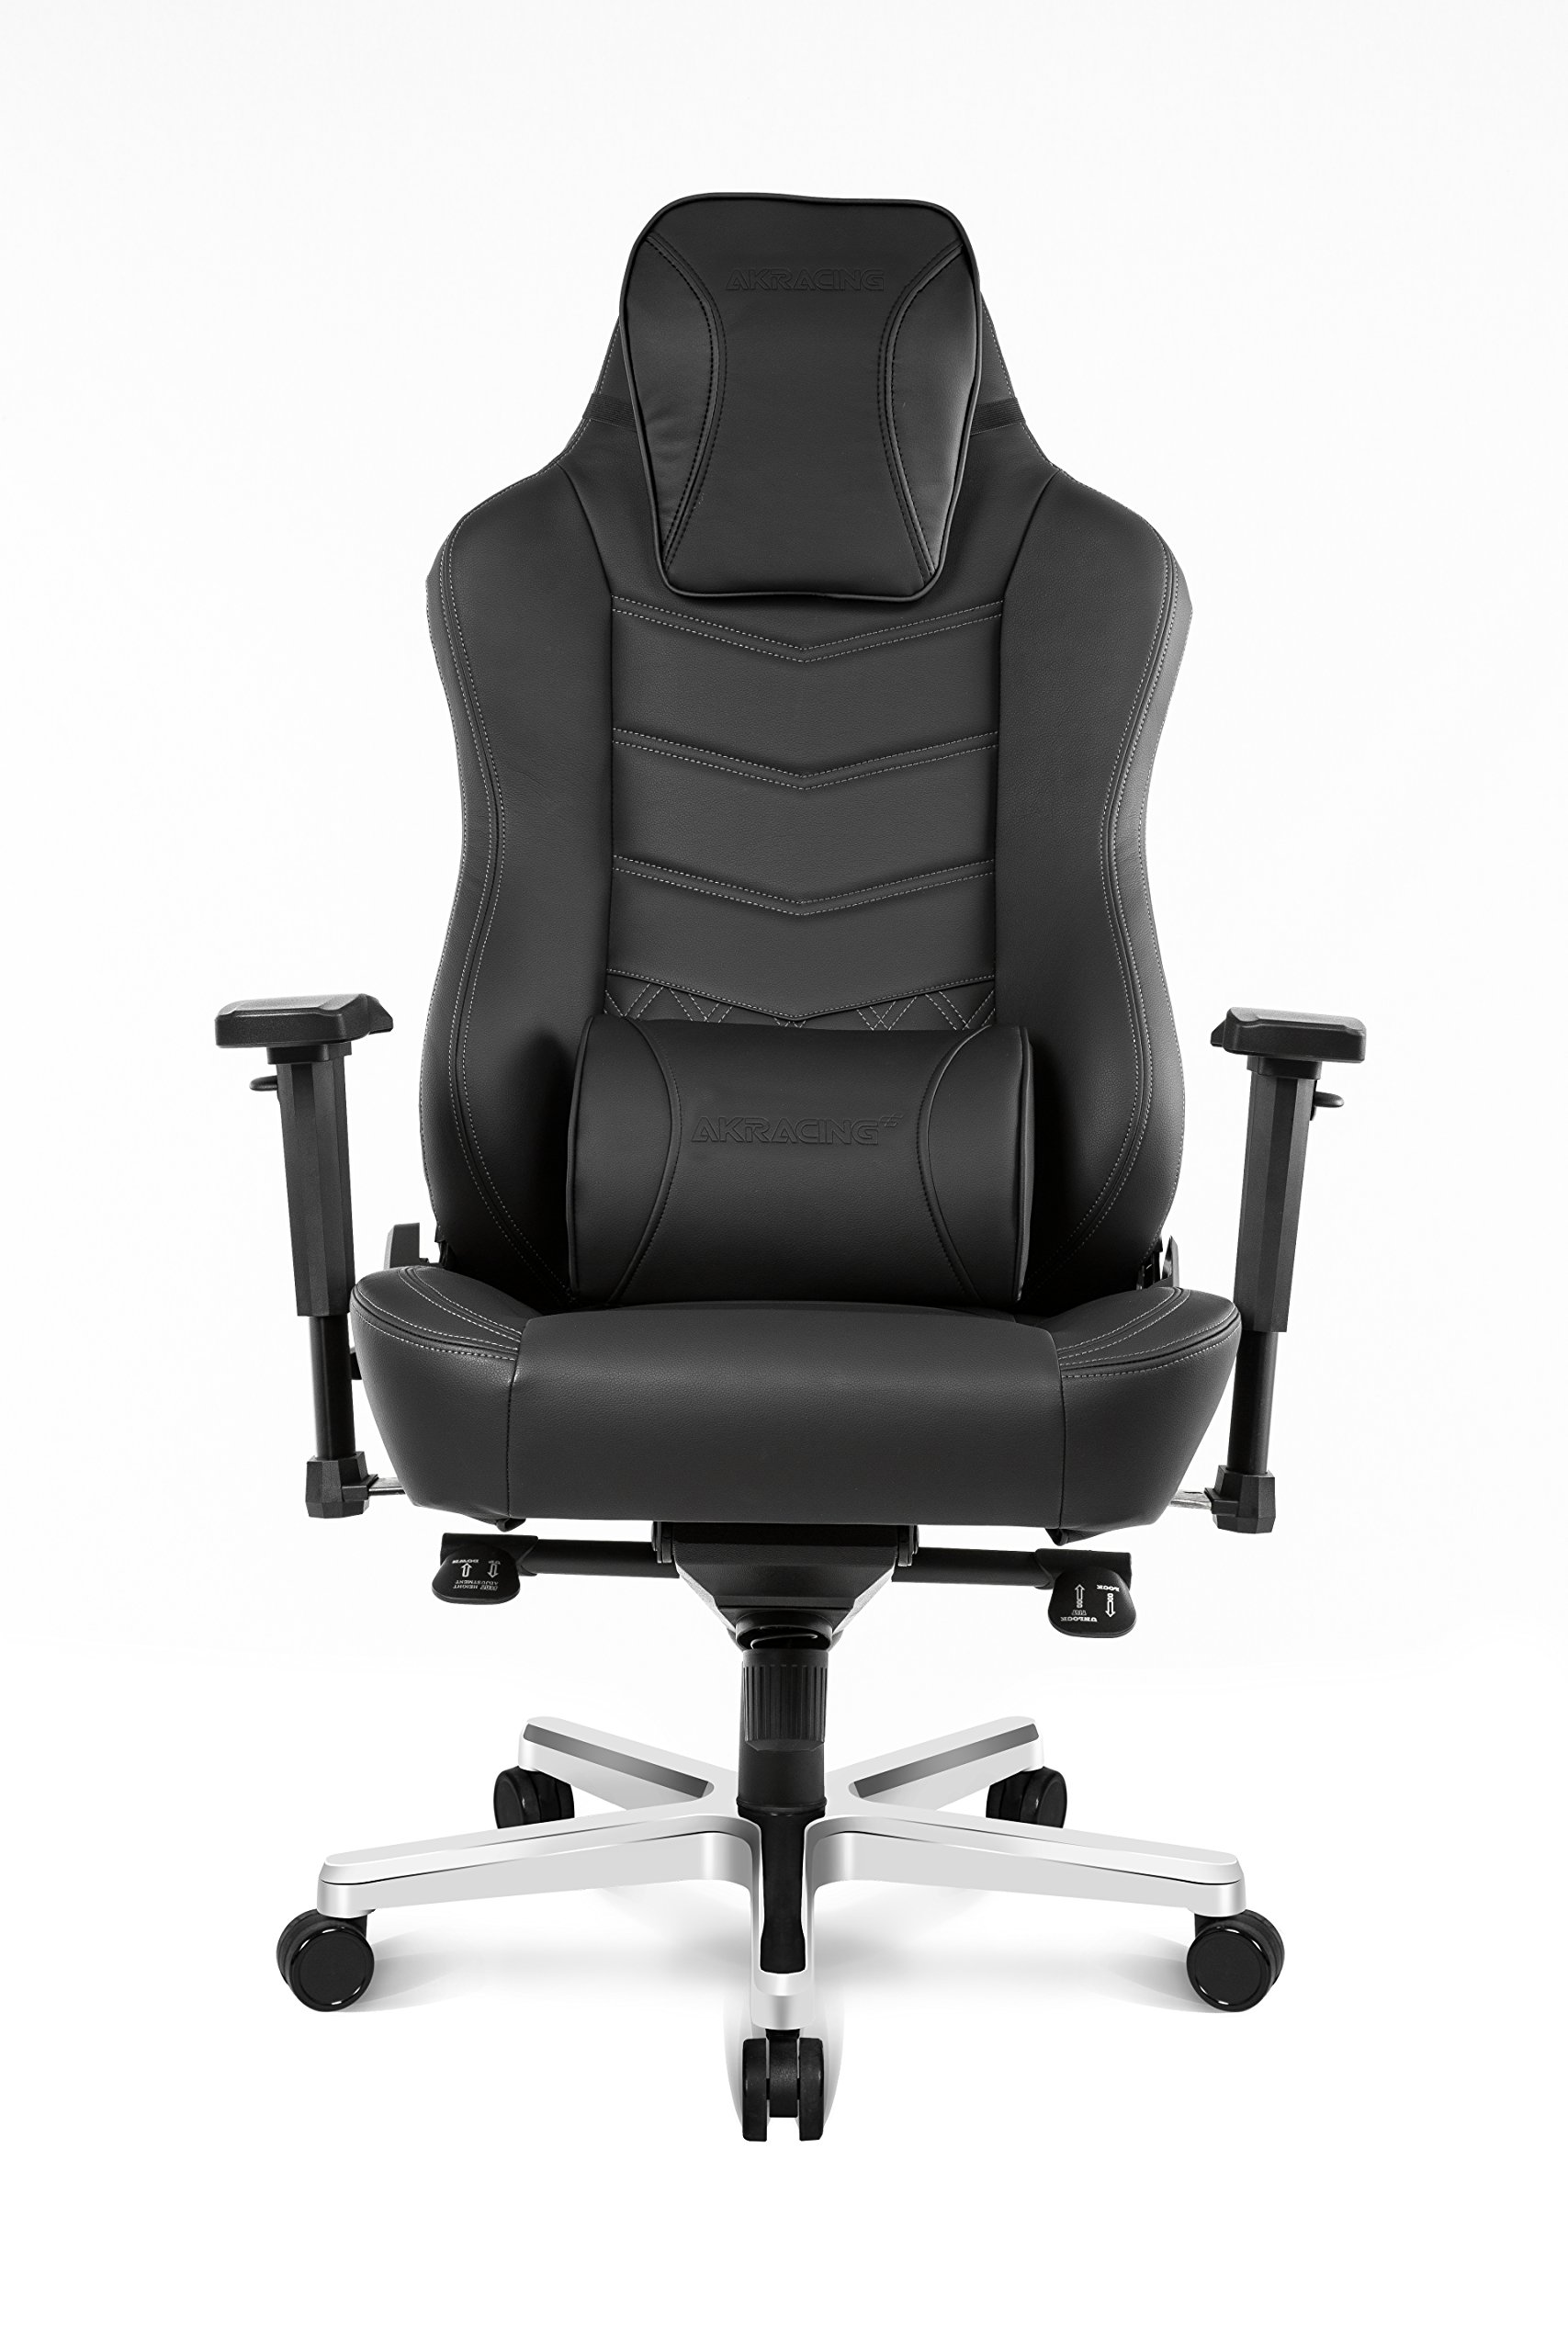 AKRacing Office Series Onyx Deluxe Executive Real Leather Desk Chair with High Backrest, Recliner, Swivel, Tilt, Rocker & Seat Height Adjustment Mechanisms, 5/10 Warranty - Black